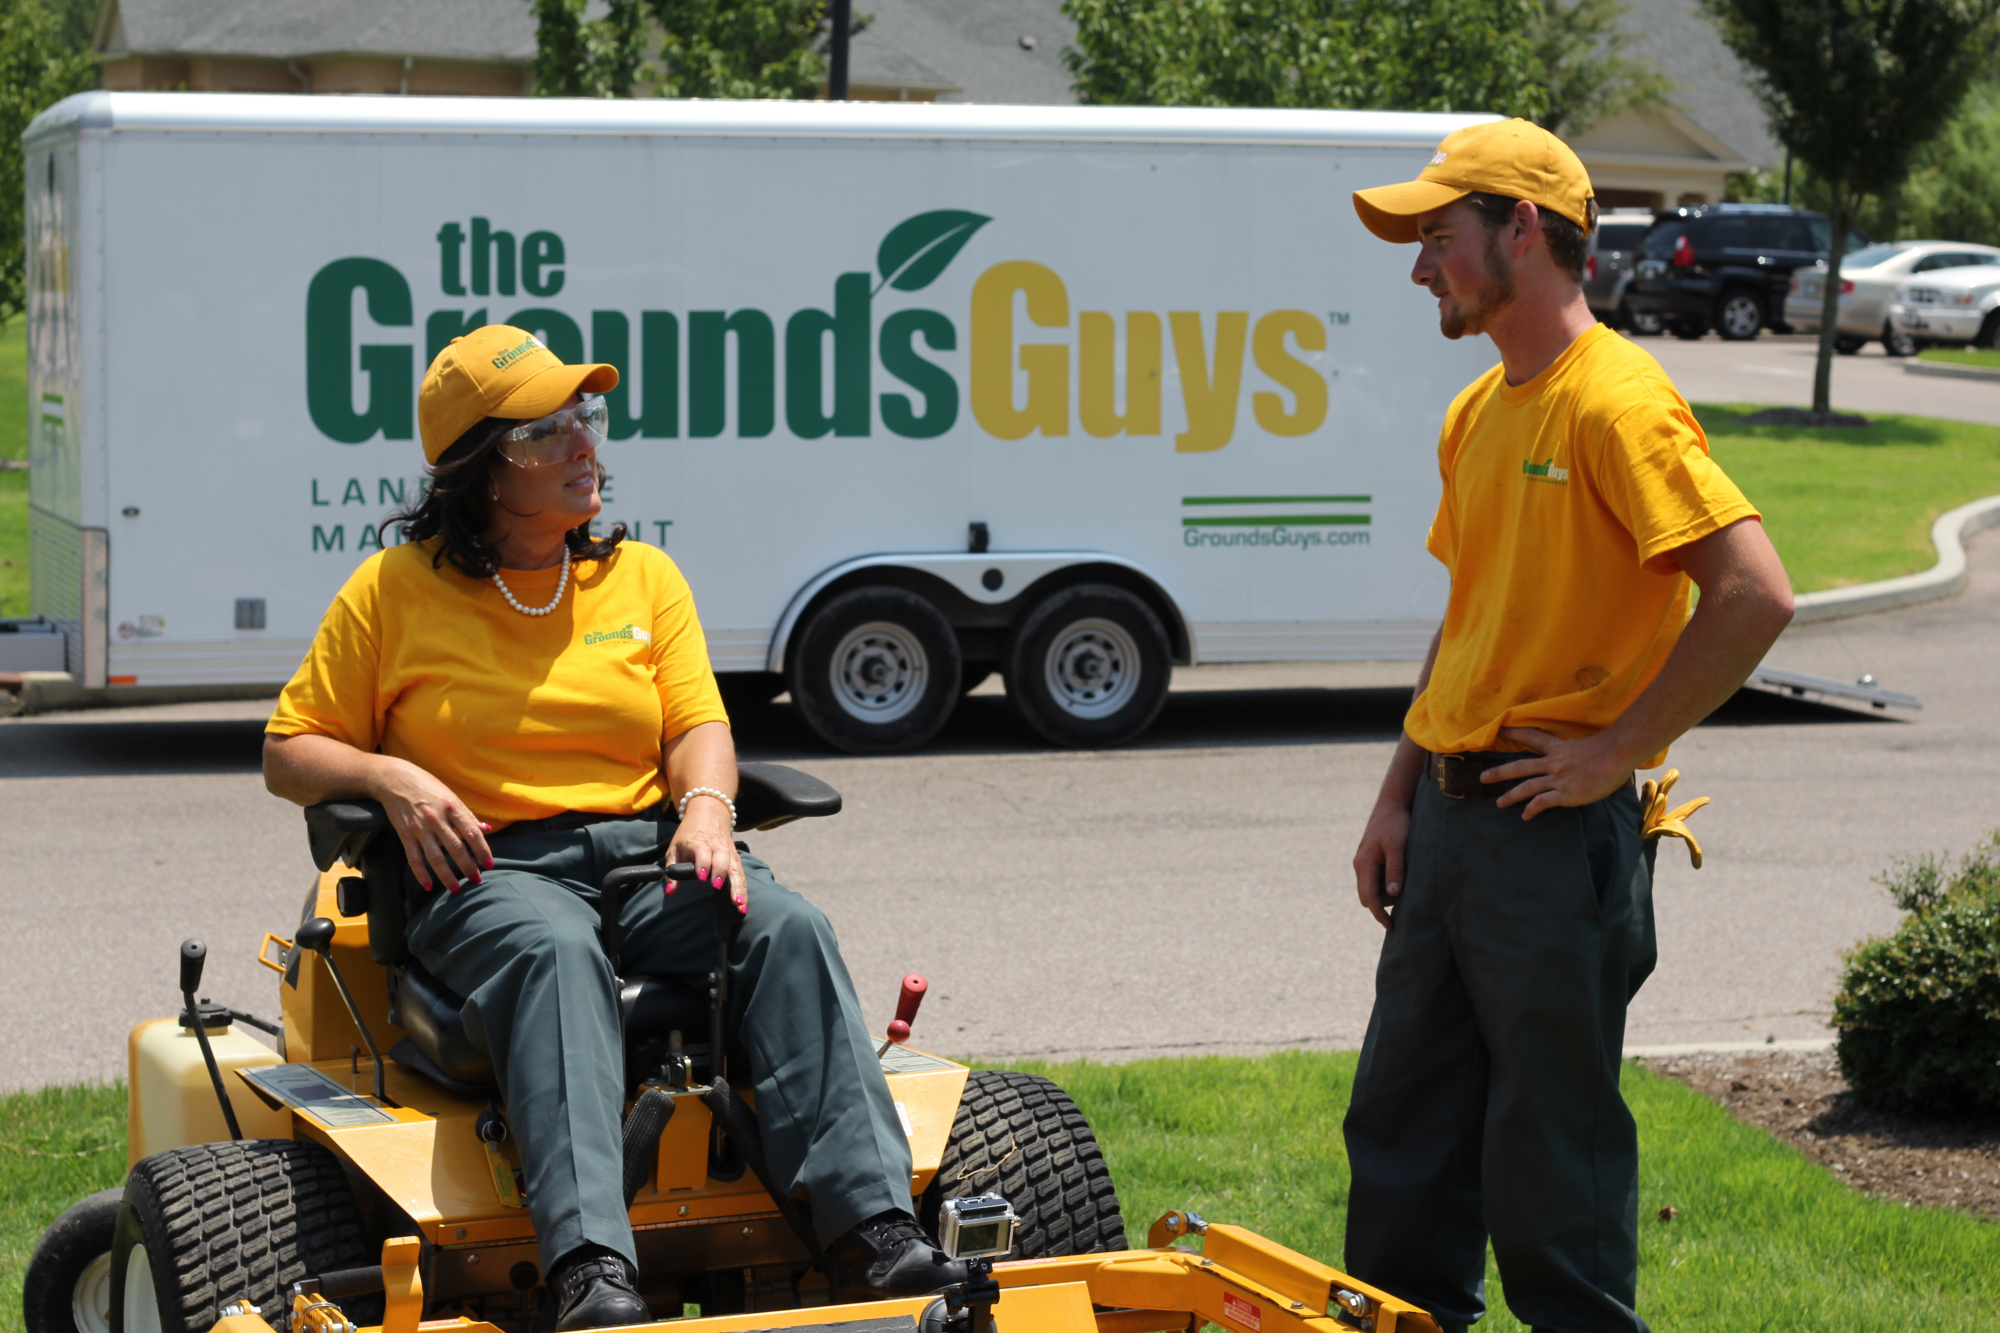 The Grounds Guys